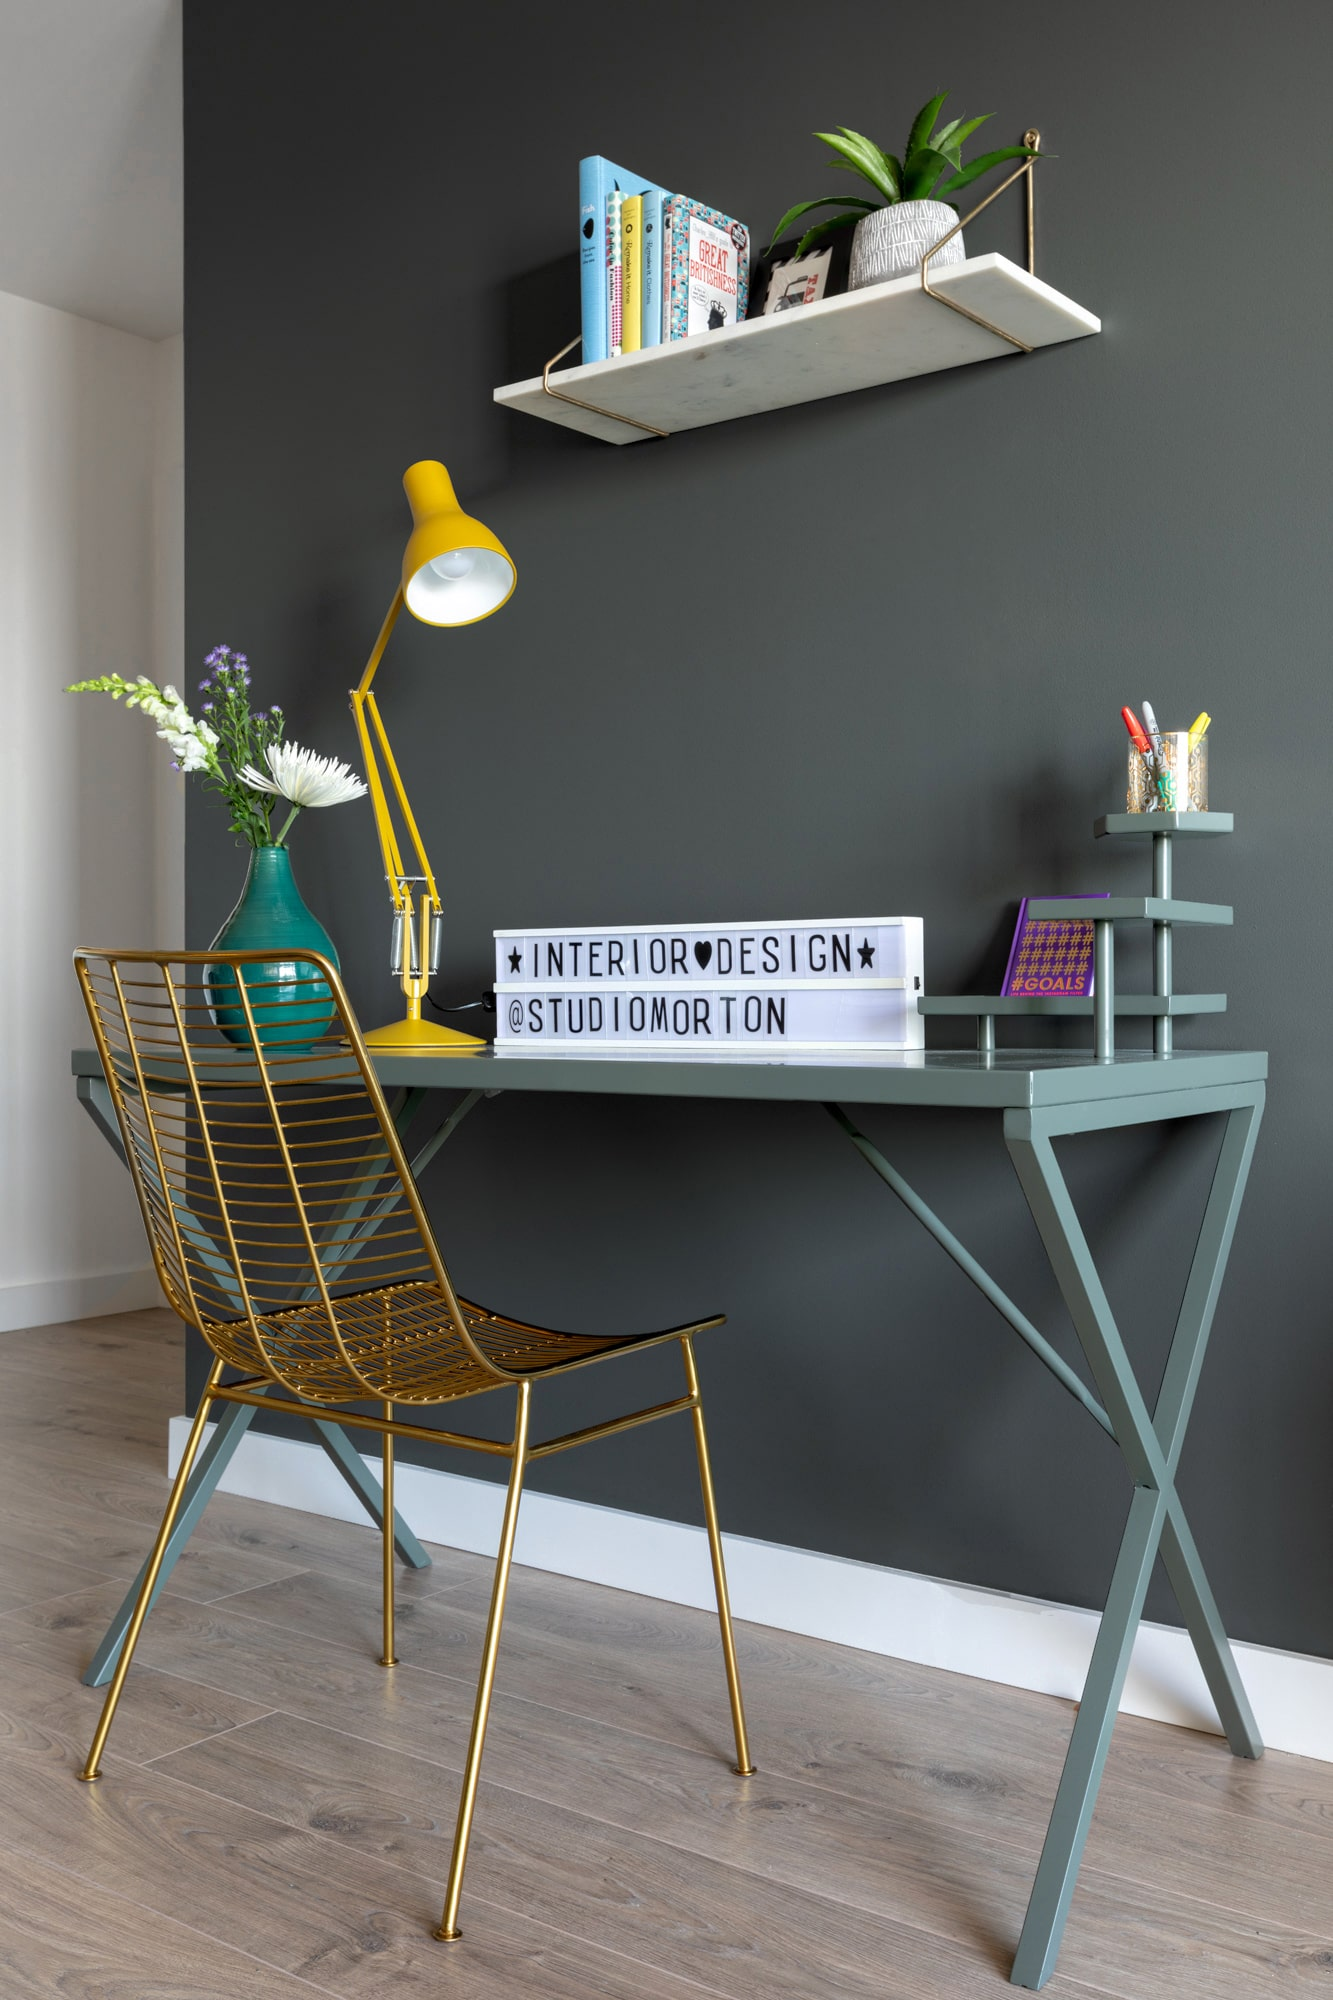 interior photo: dark grey walls; green desk with yellow table lamp; gold metal chair